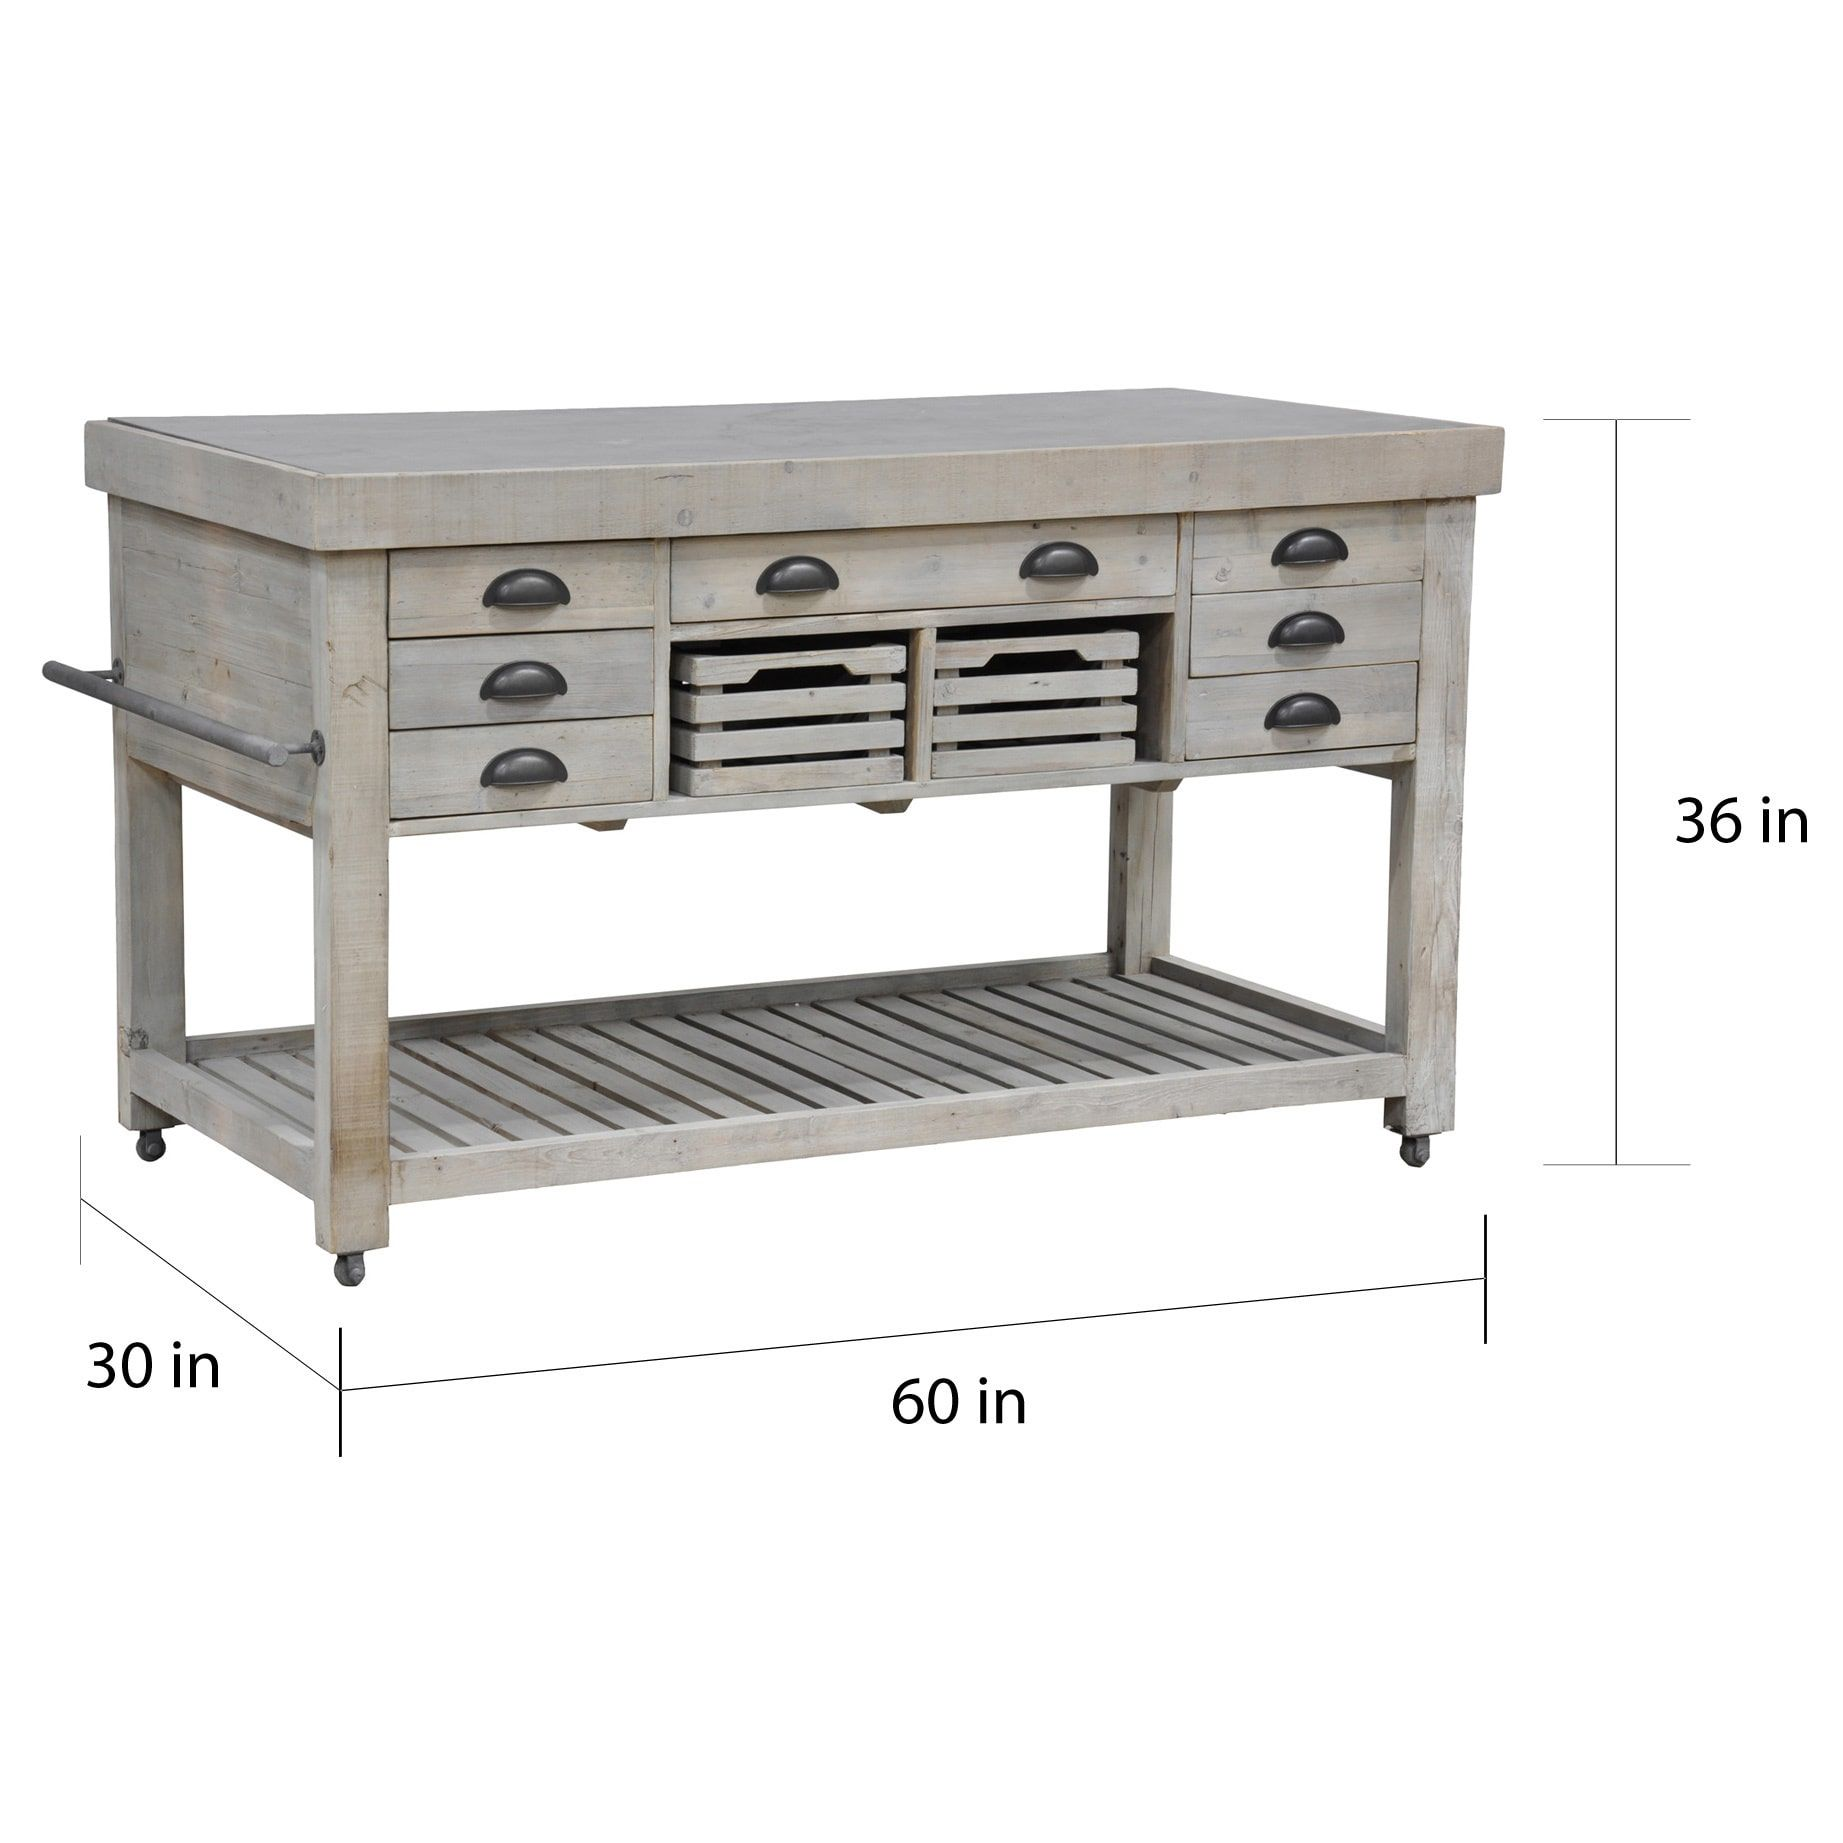 Avery Wood And Stone 60Inch Kitchen Islandkosas Home Extraordinary 60 Inch Kitchen Island 2018